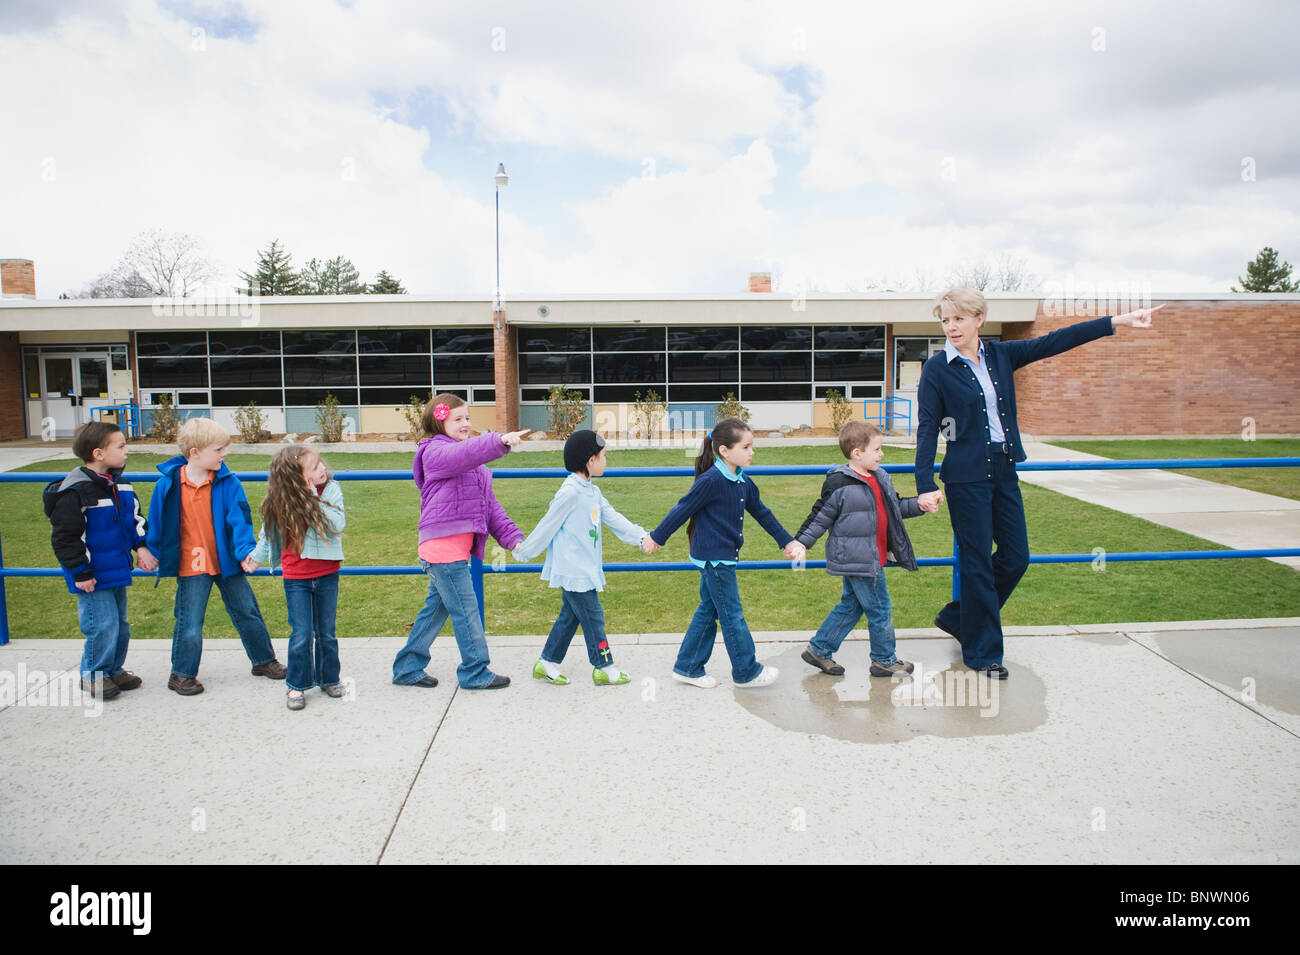 Elementary school students on a field trip Stock Photo